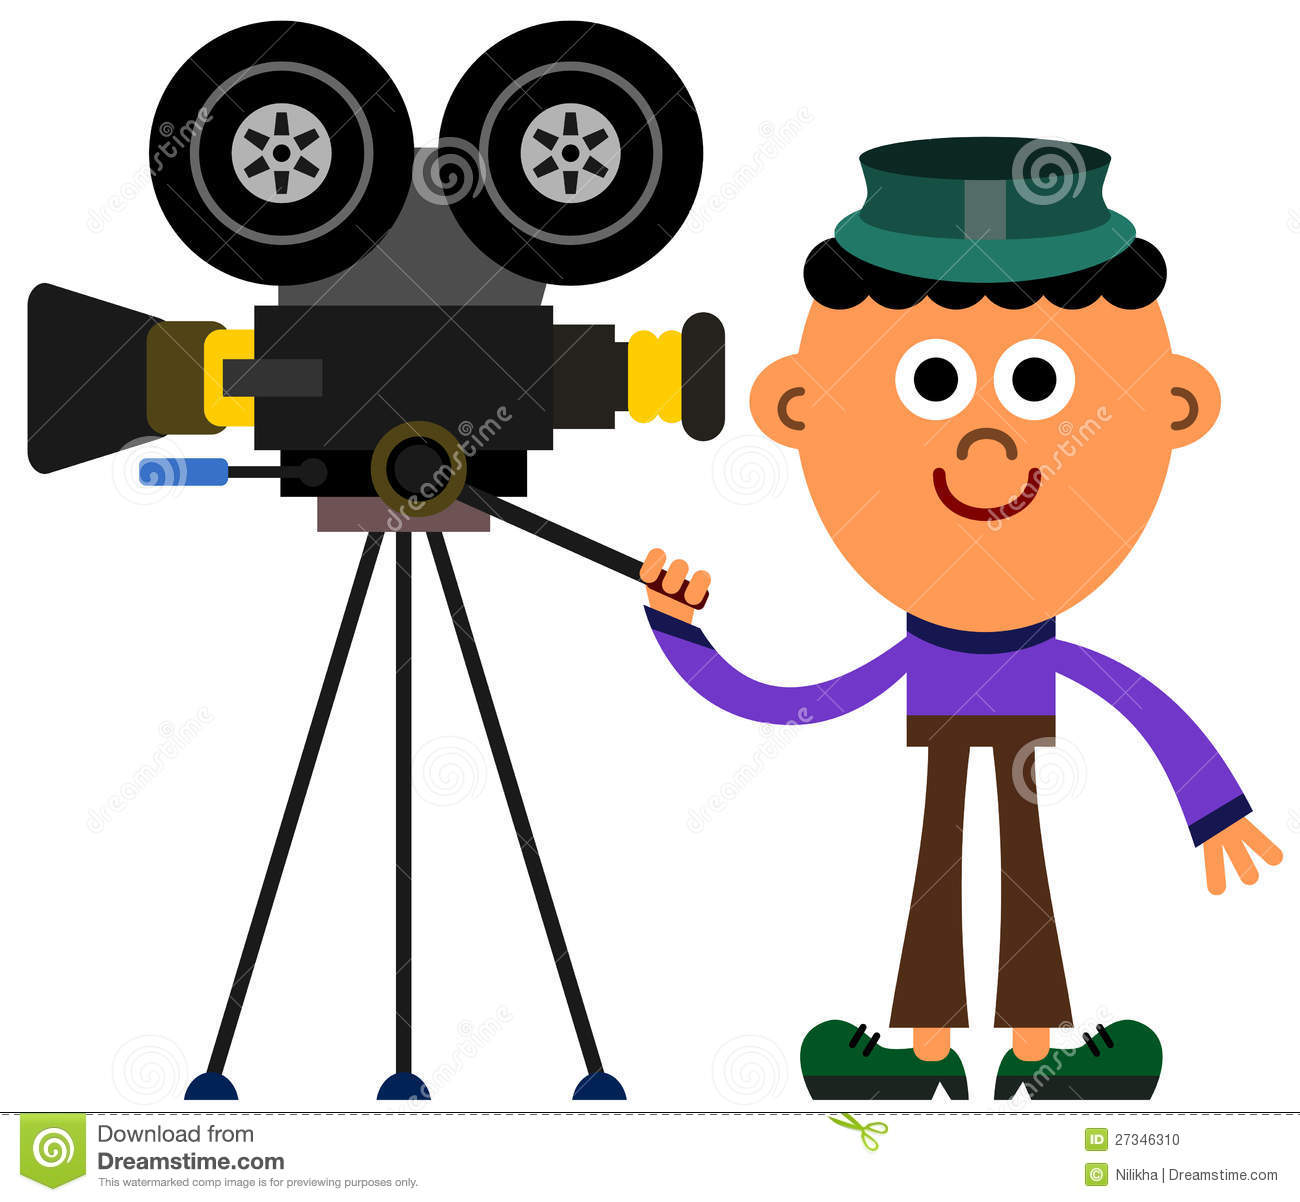 Cartoon illustration of a man with a movie camera.